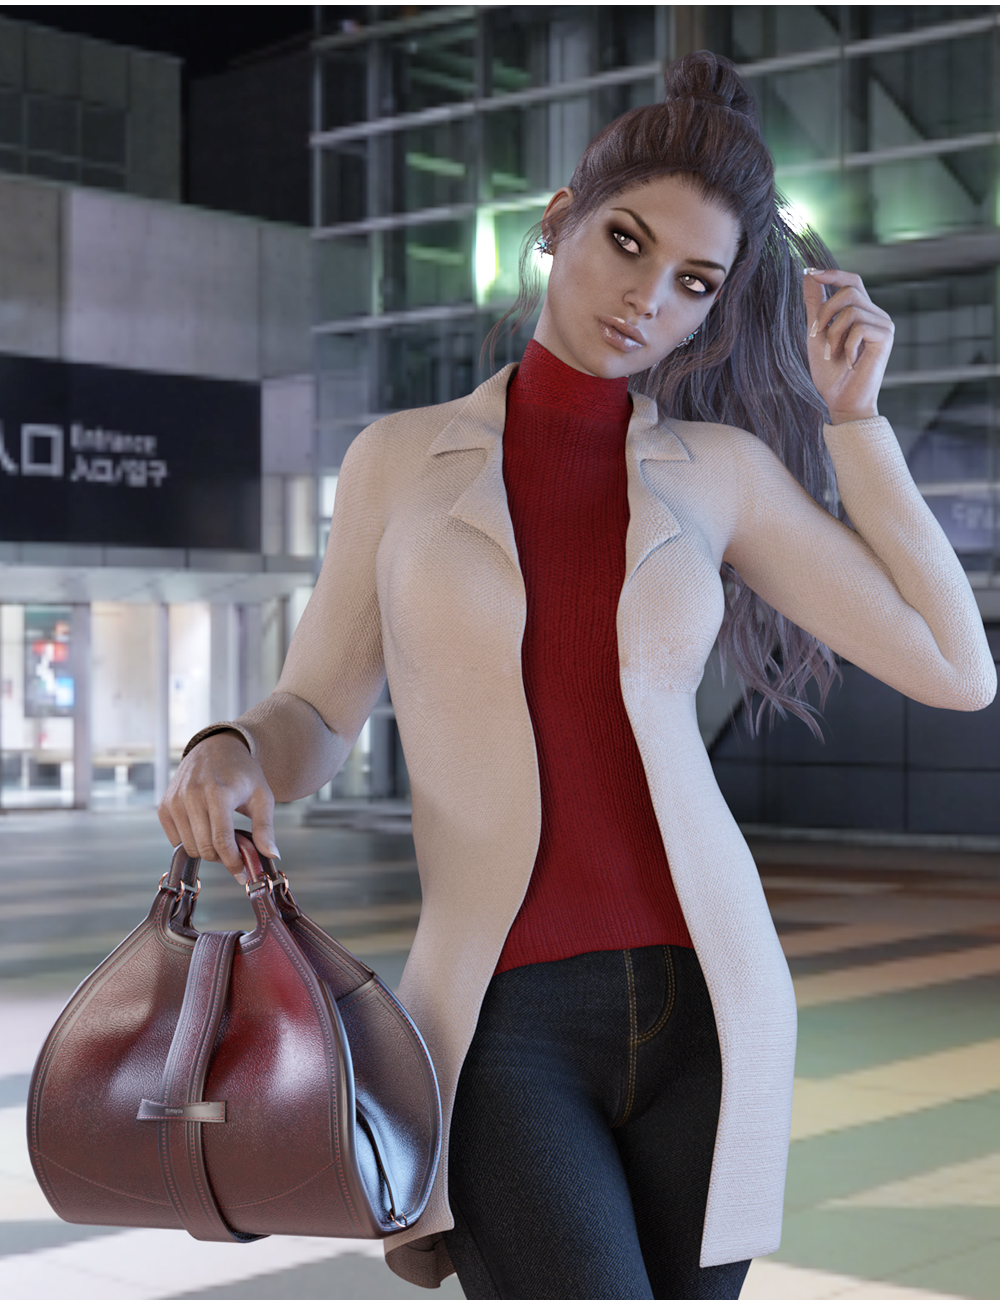 X-Fashion Chic Winter Outfit for Genesis 3 Female(s) by: xtrart-3d, 3D Models by Daz 3D